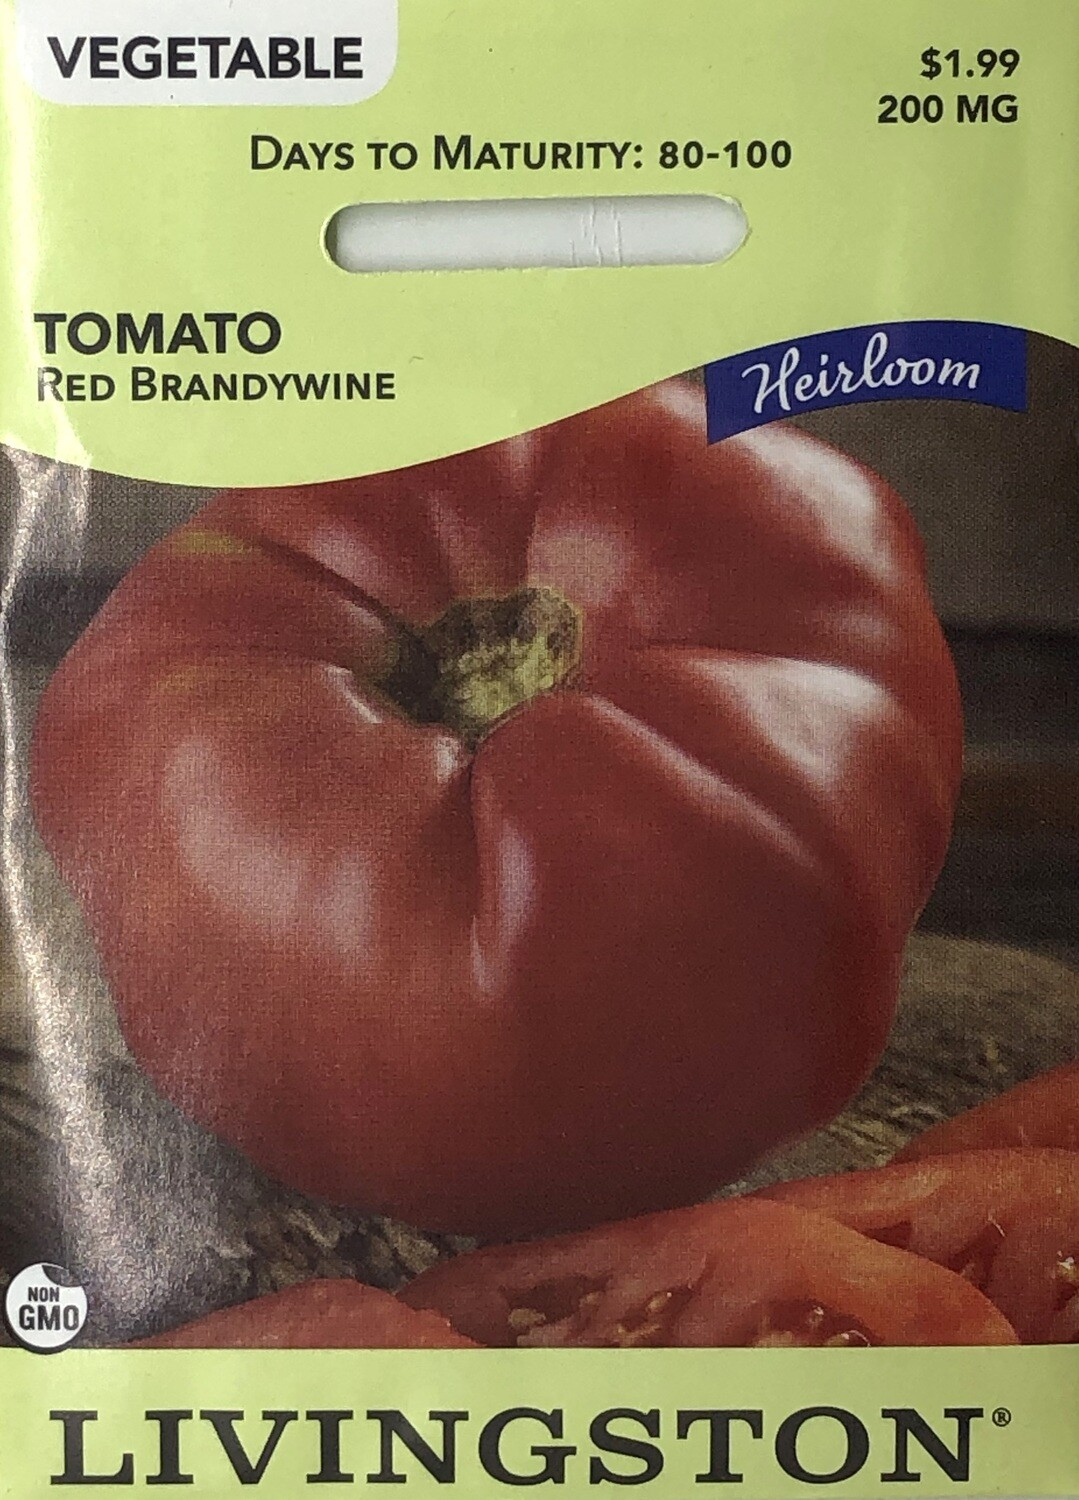 TOMATO - HEIRLOOM - RED BRANDYWINE